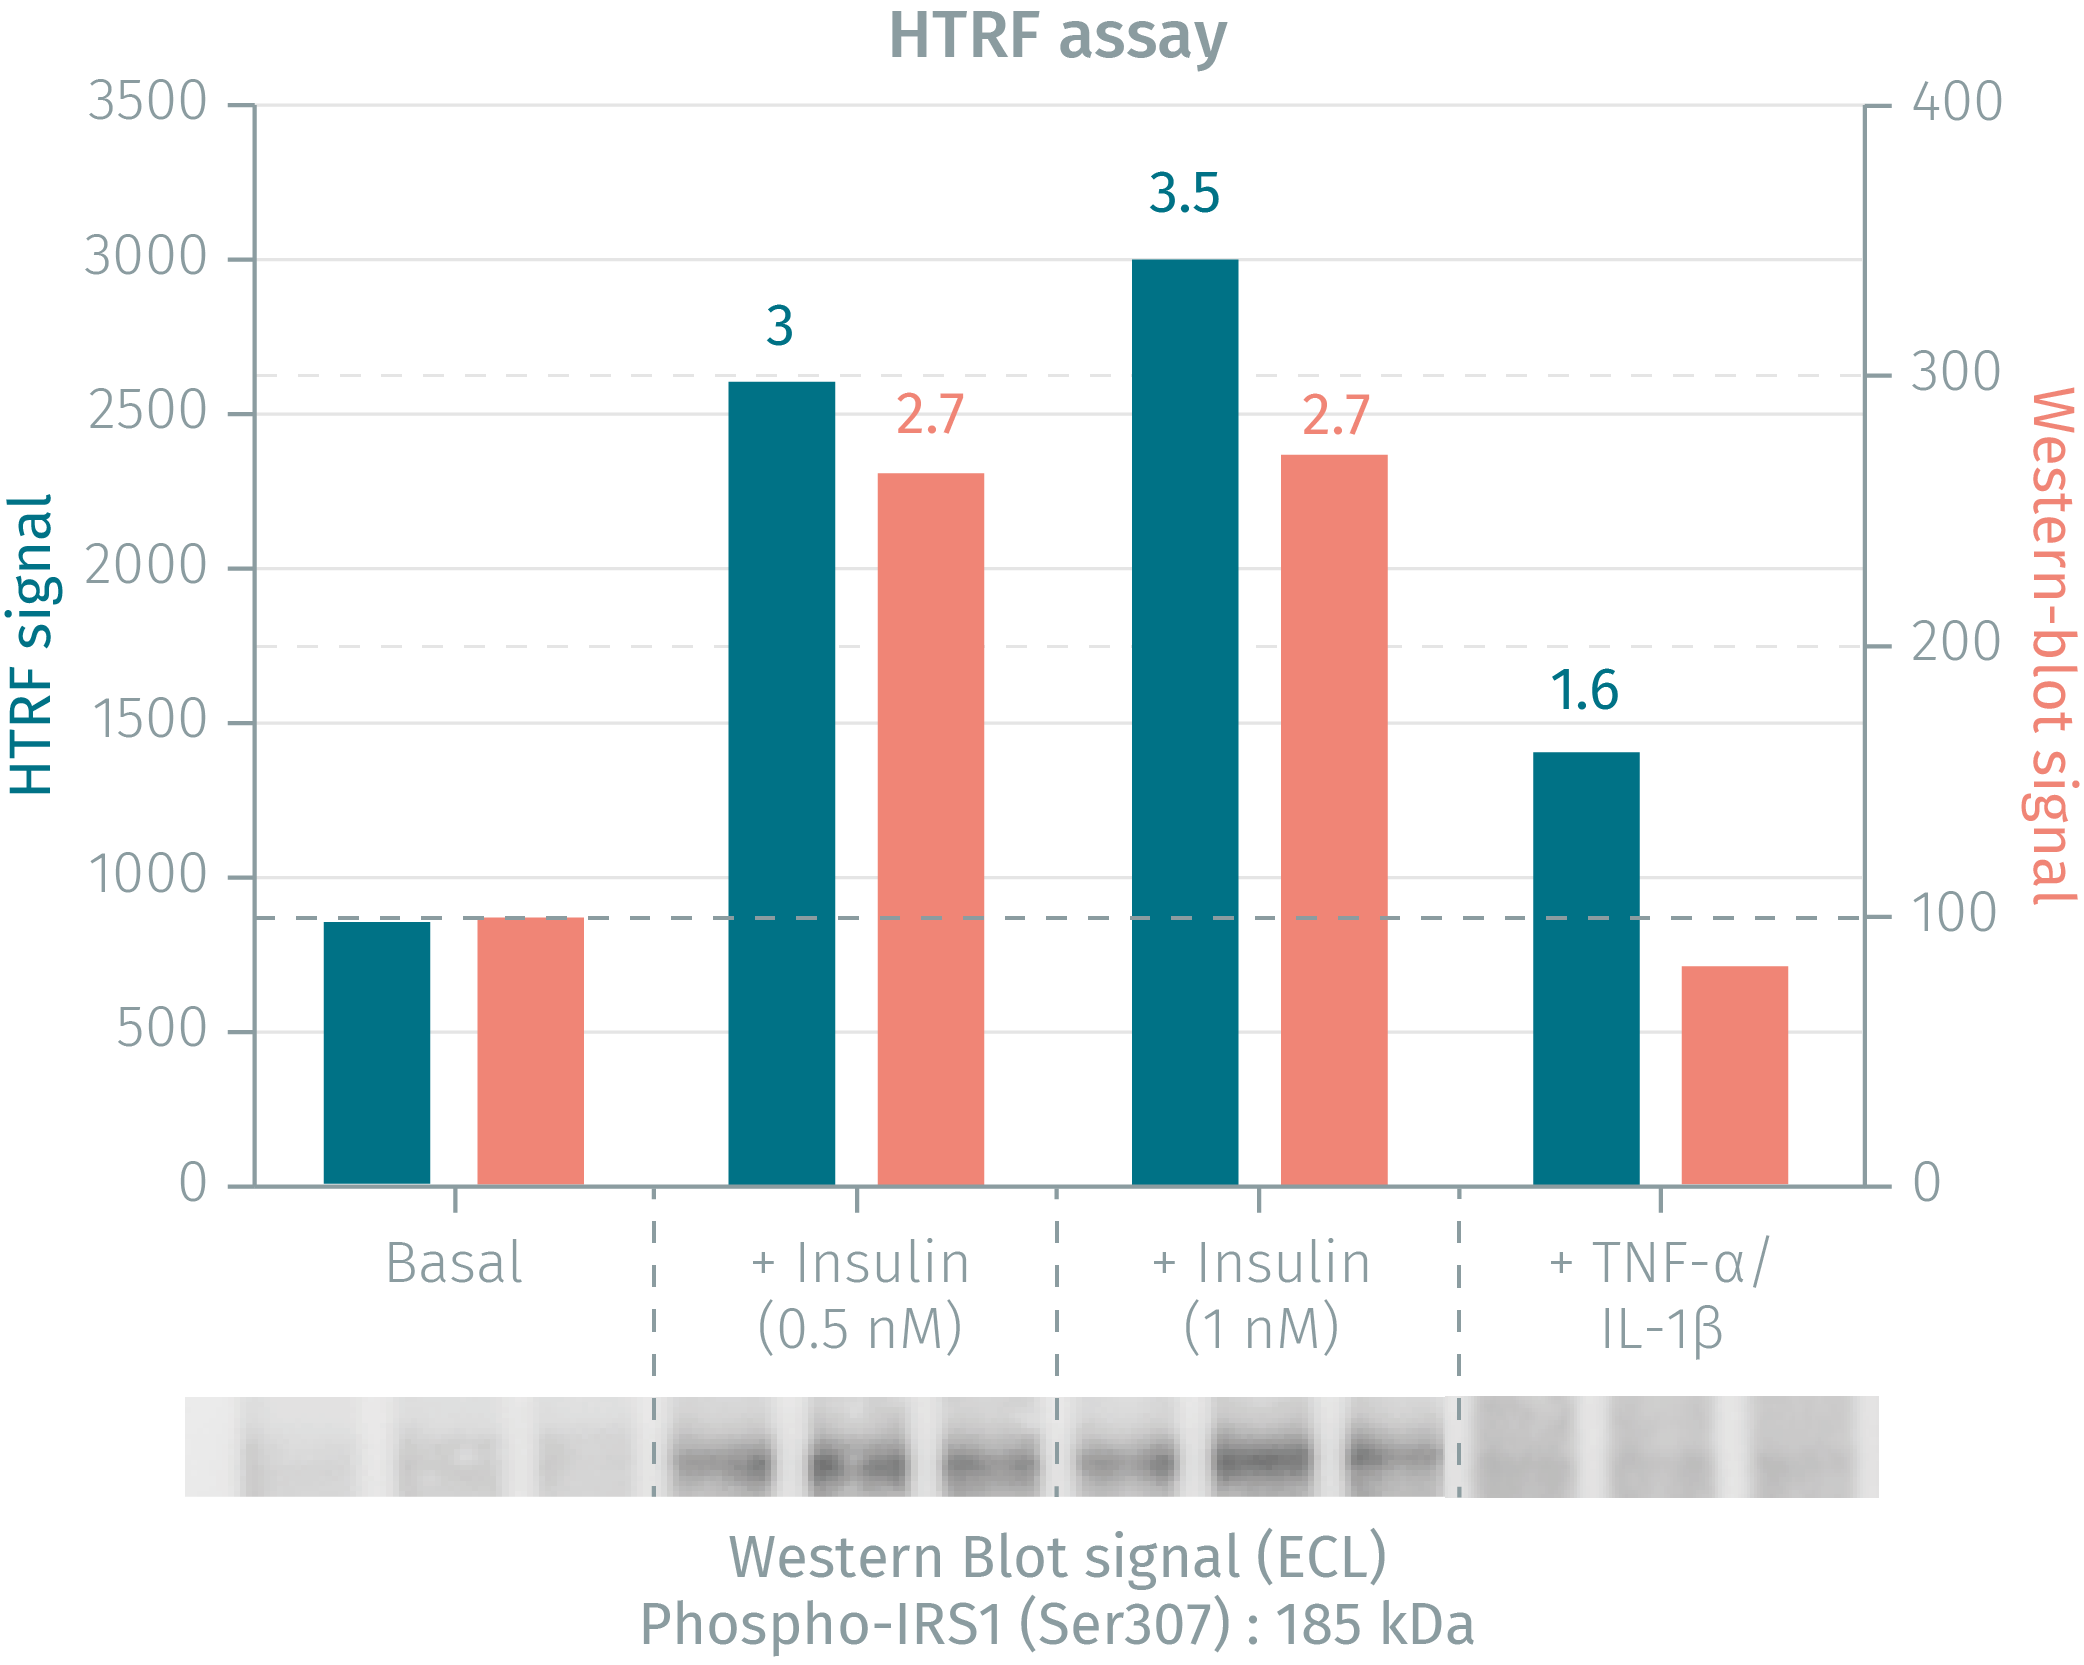 HTRF phospho-IRS1 assay compared to Western Blot